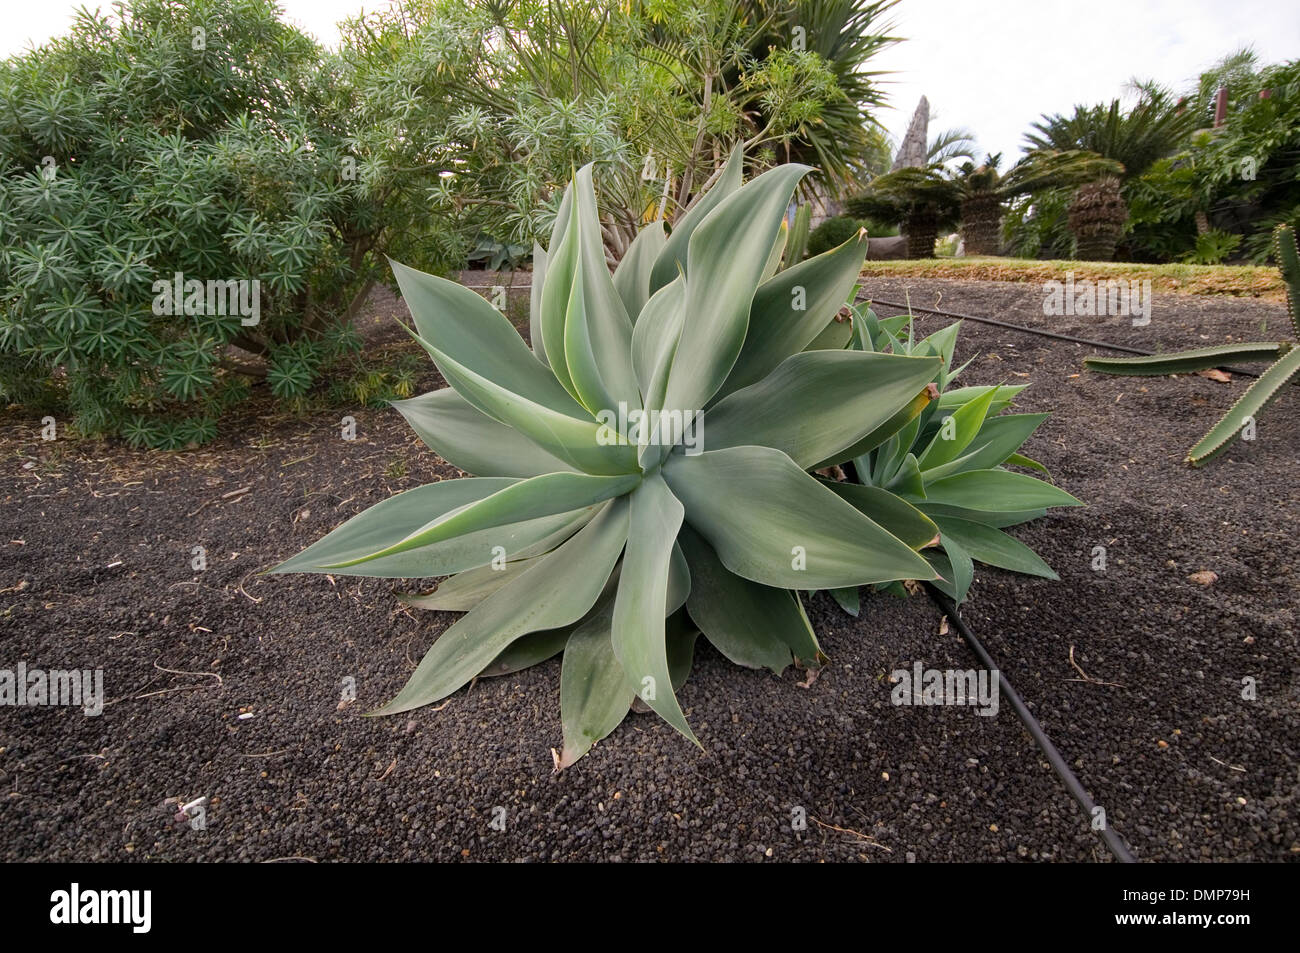 Aloe Vera Pflanze Pflegen Succulents Stockfotos And Succulents Bilder Alamy